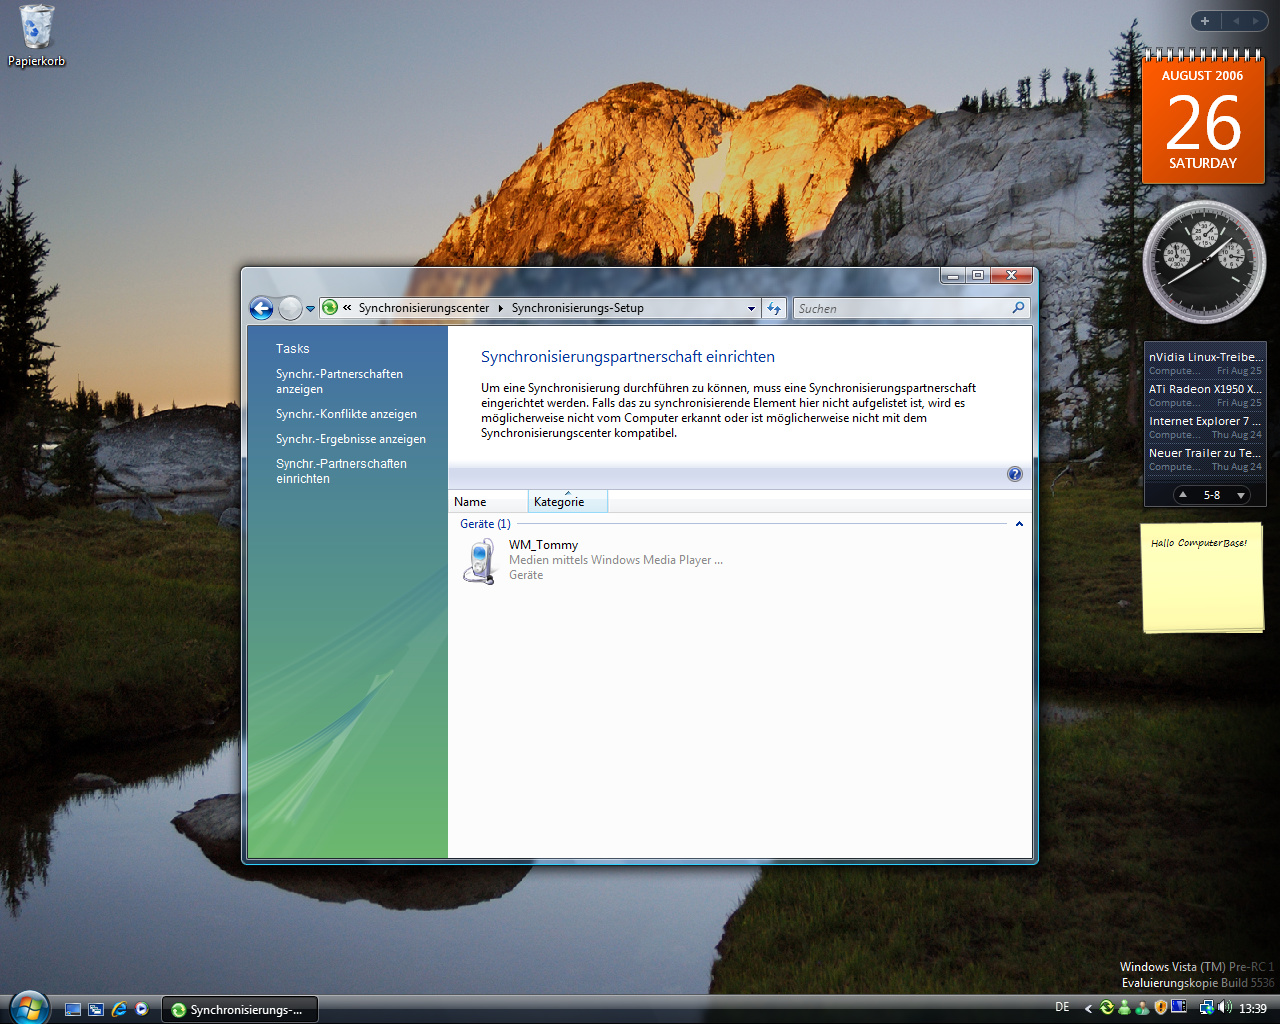 Windows Vista Build 5536 - Synchronisationscenter 2